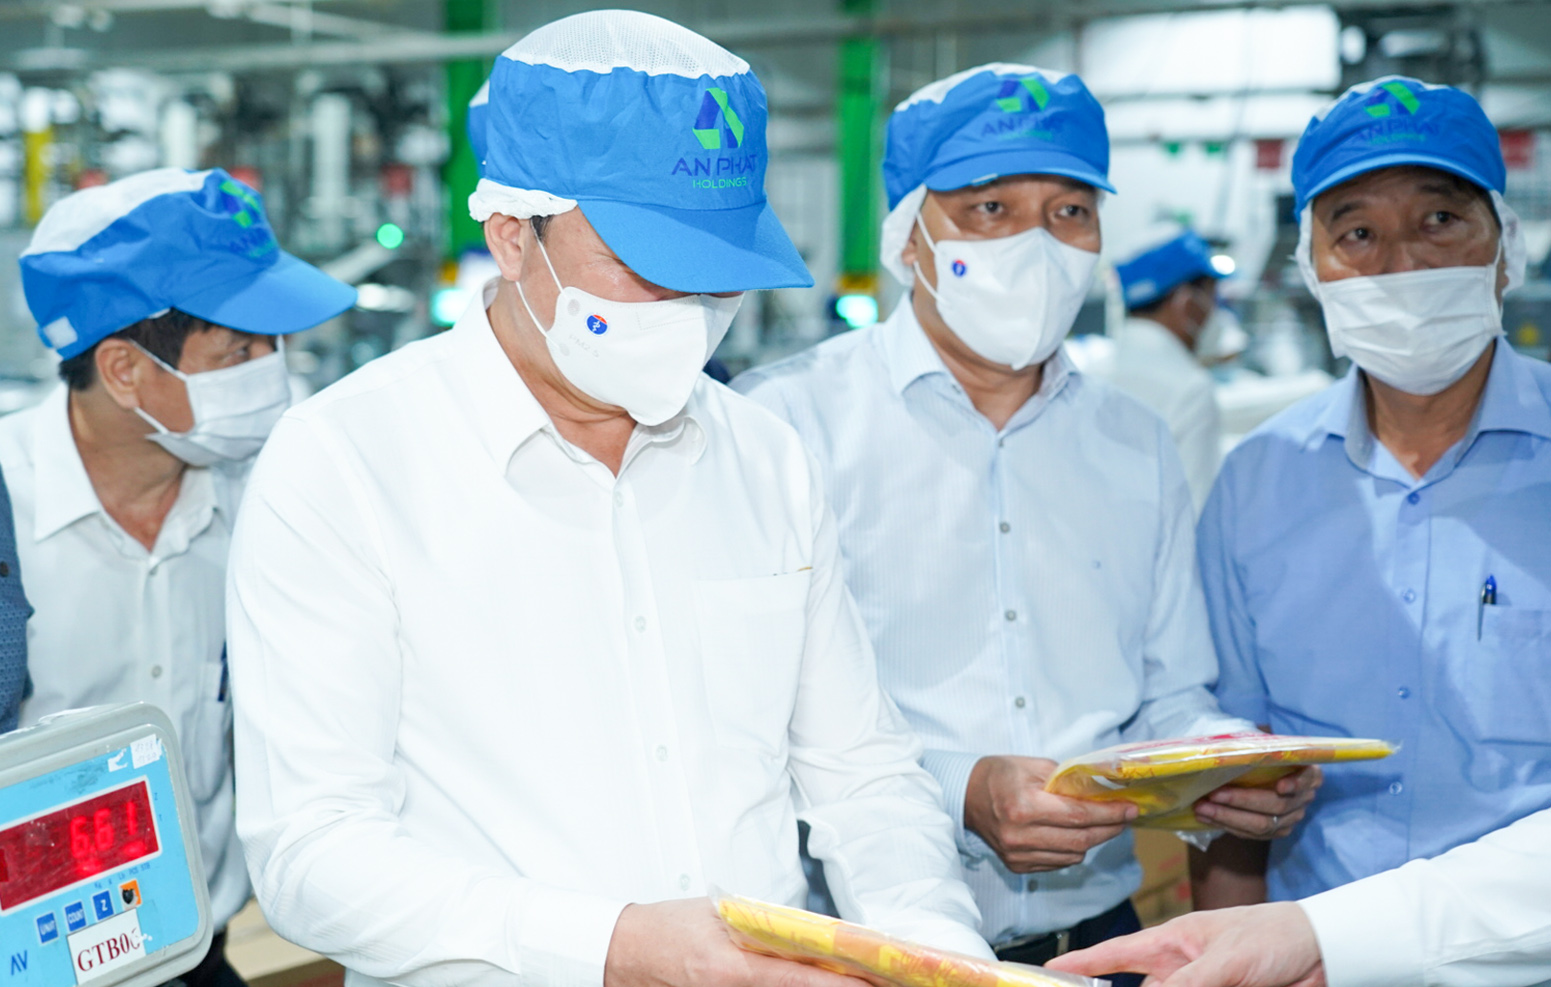 The delegation visits An Phat Holdings' manufacturing plant